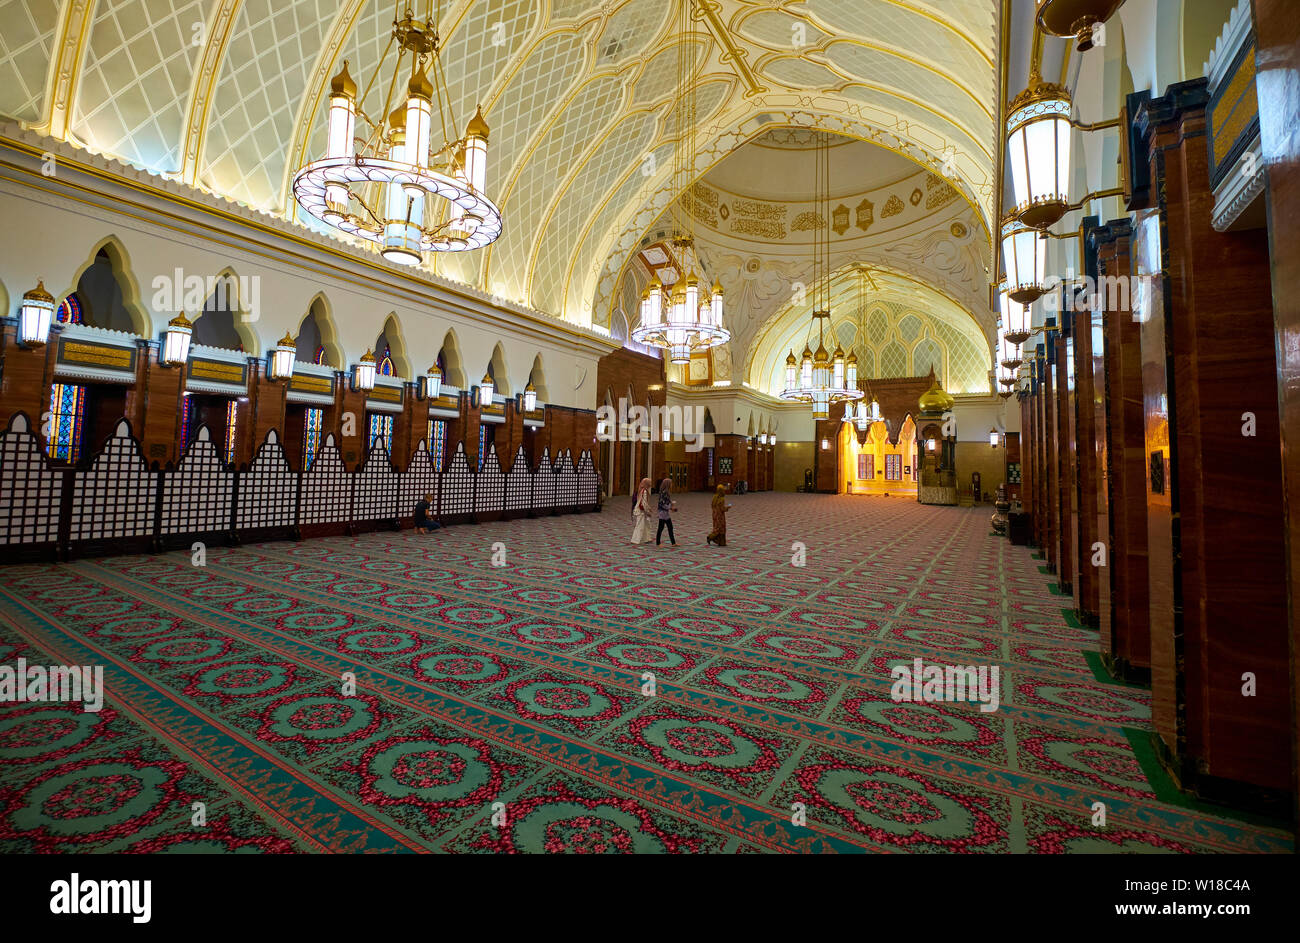 Interior view of the Omar Ali Saifuddien mosque in downtown Bandar Seri Begawan,Brunei. - Stock Image